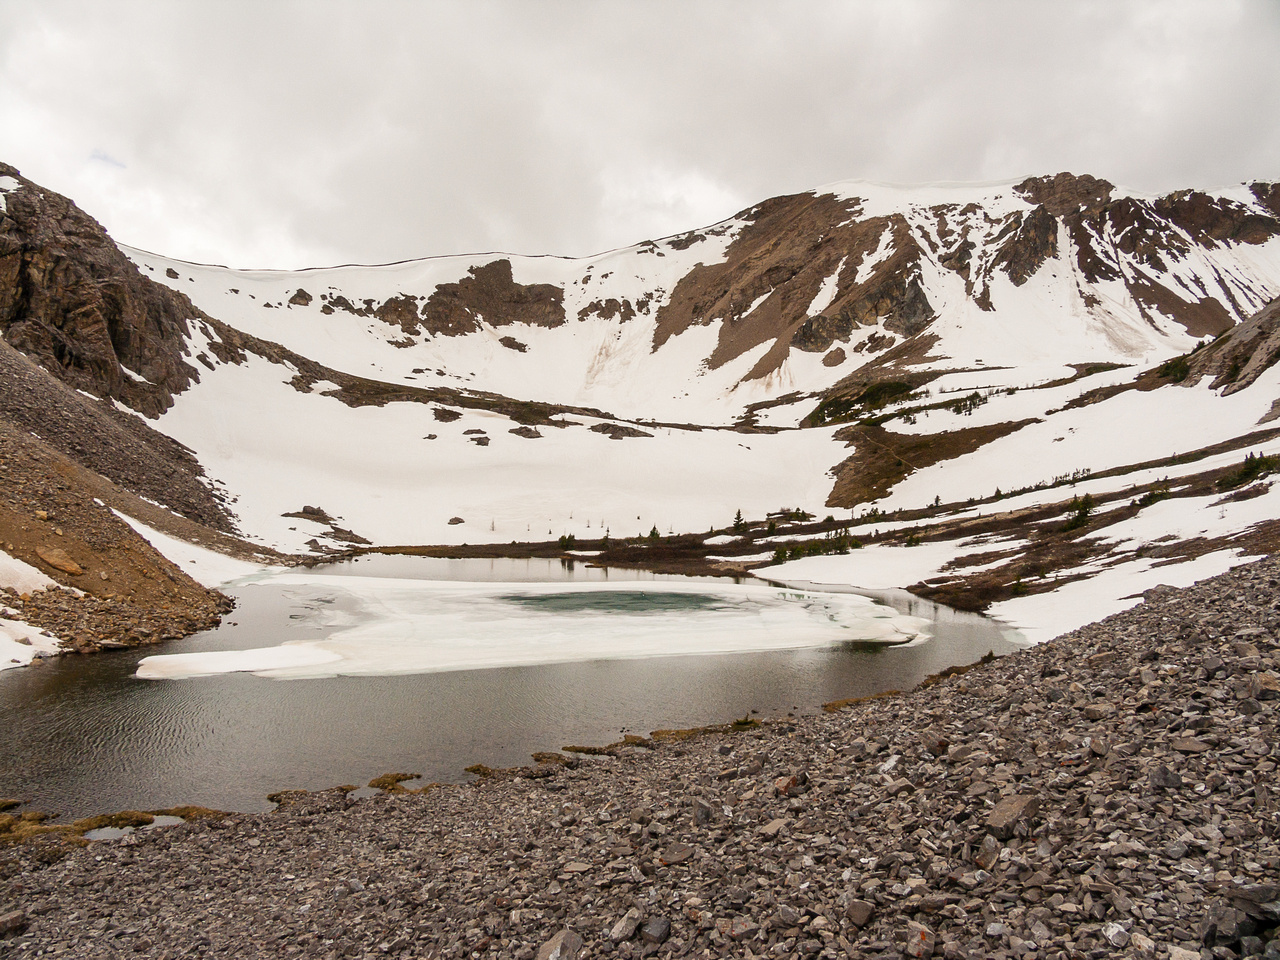 The second lake, above Bourgeau Lake and getting above tree line. Harvey Pass is ahead and to the left.